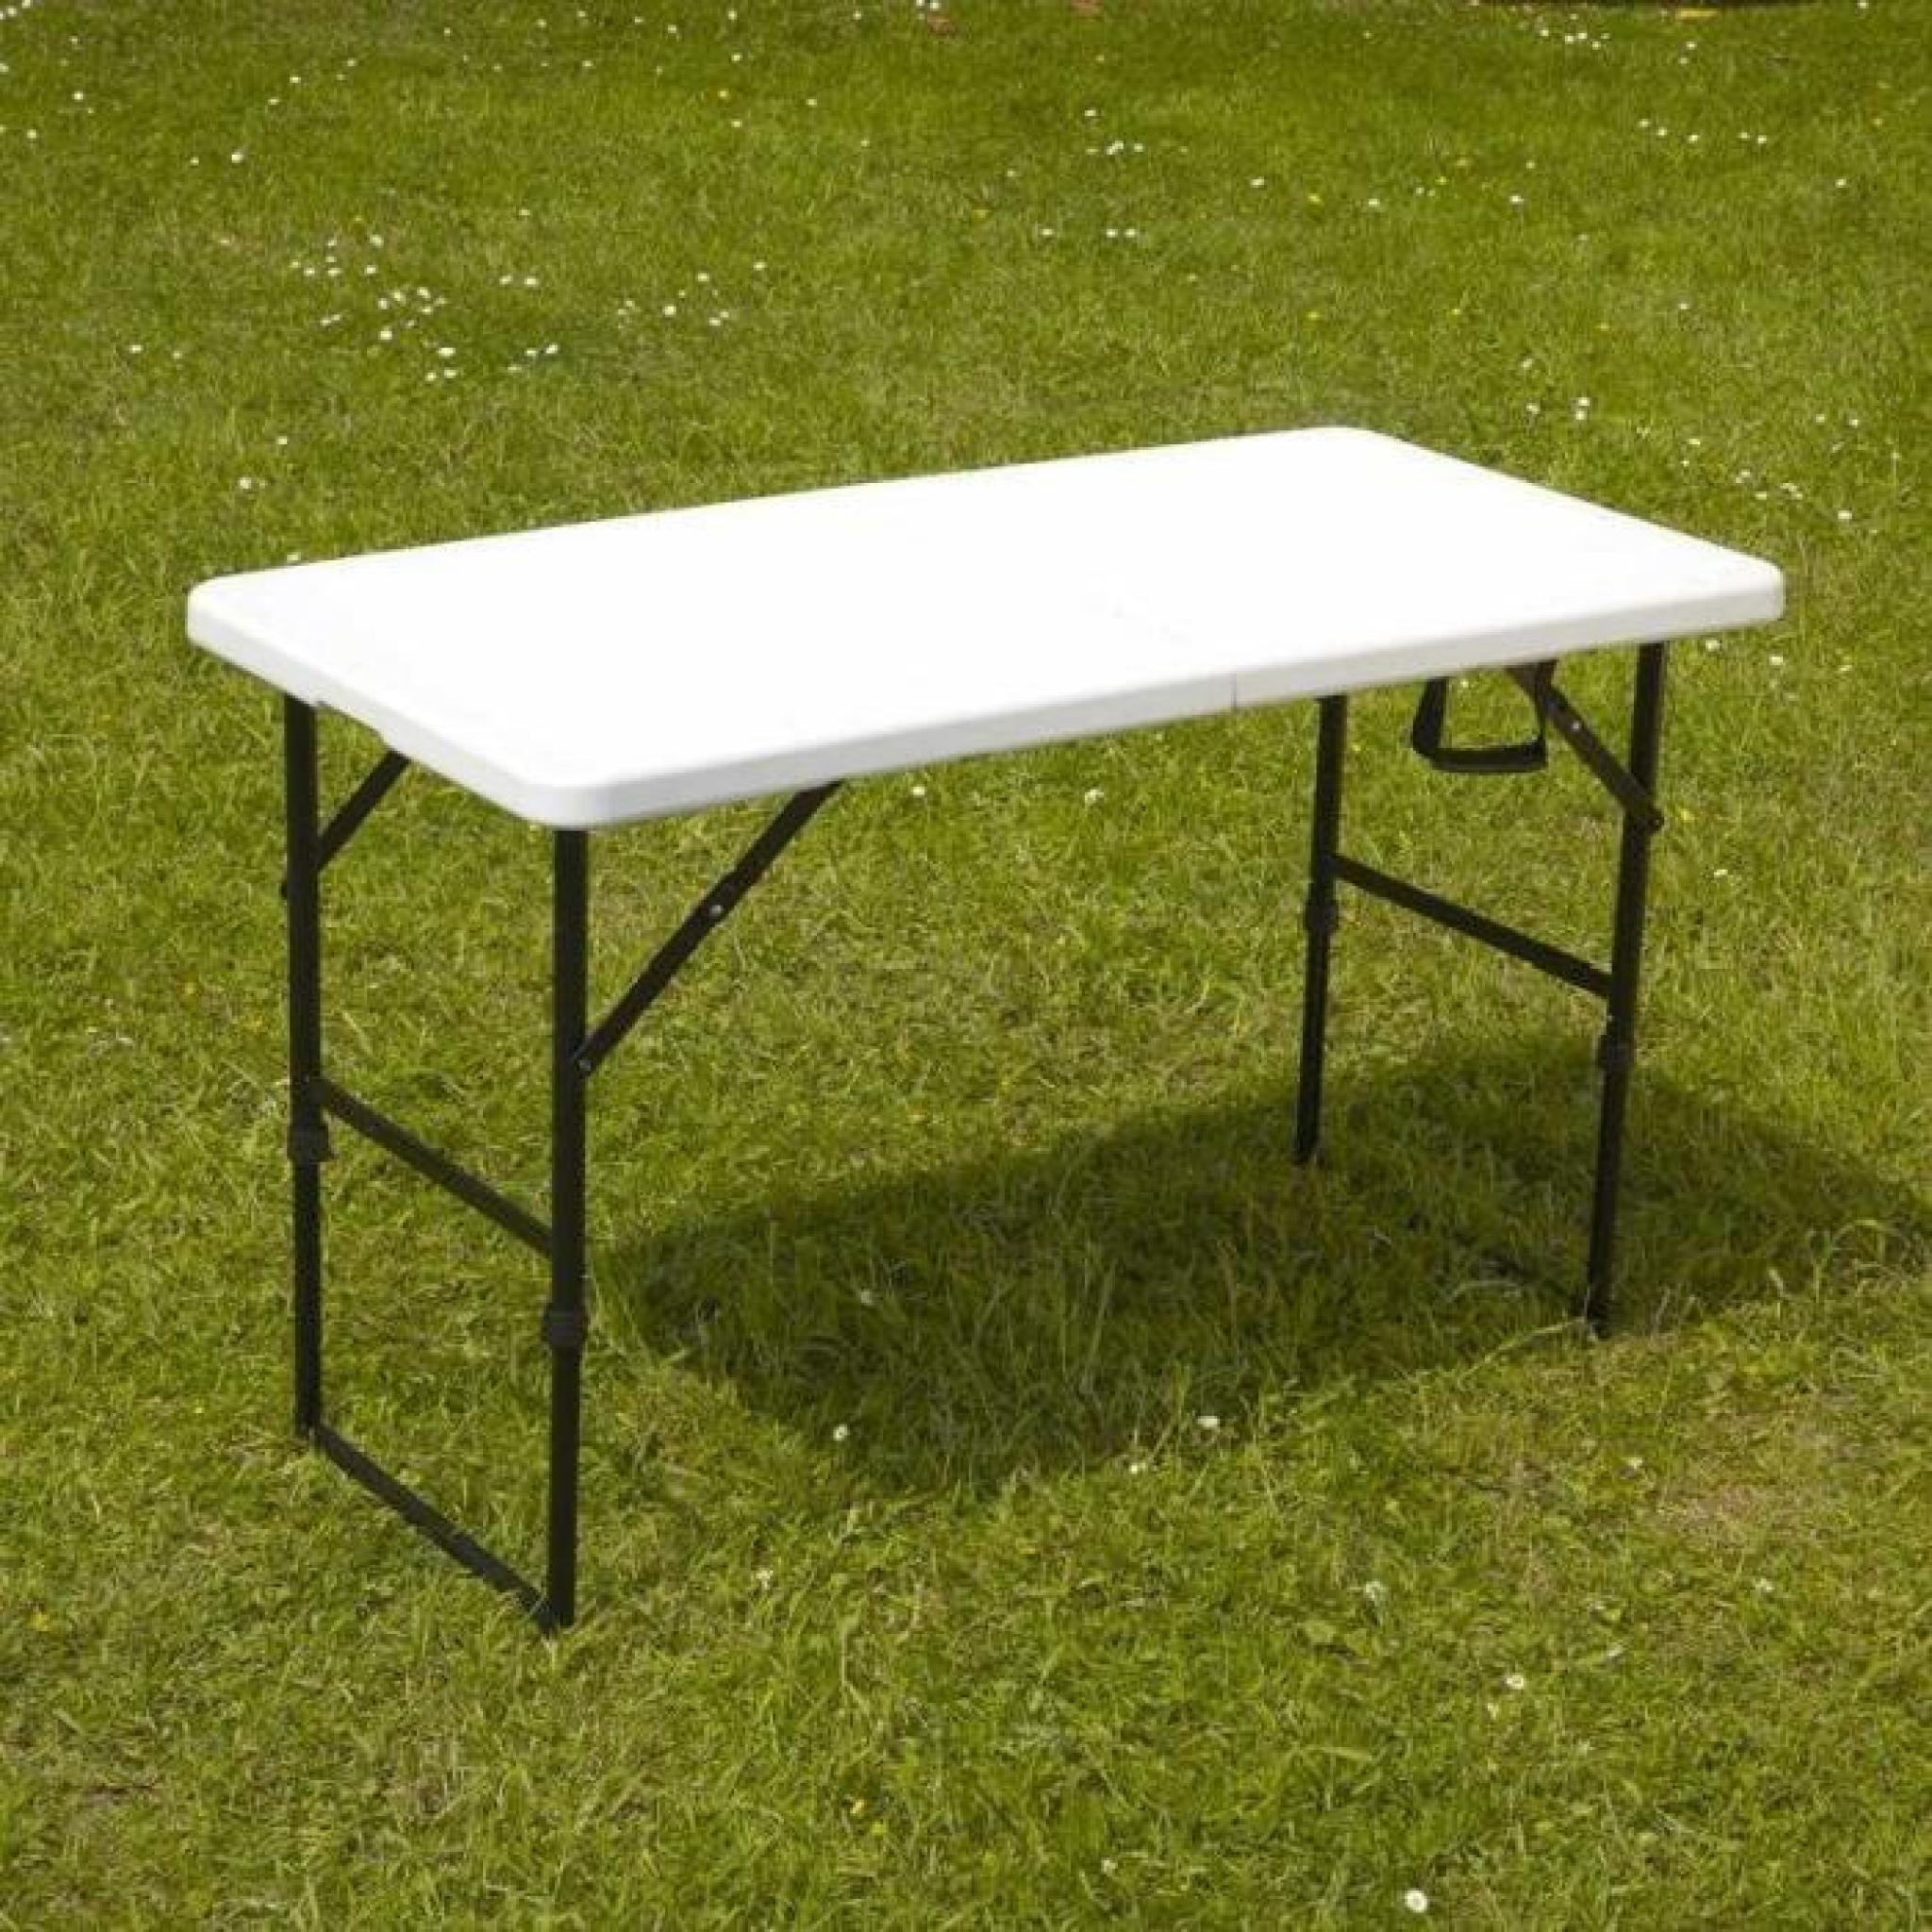 table pliante portable camping 122 cm achat vente table de jardin en plastique pas cher. Black Bedroom Furniture Sets. Home Design Ideas